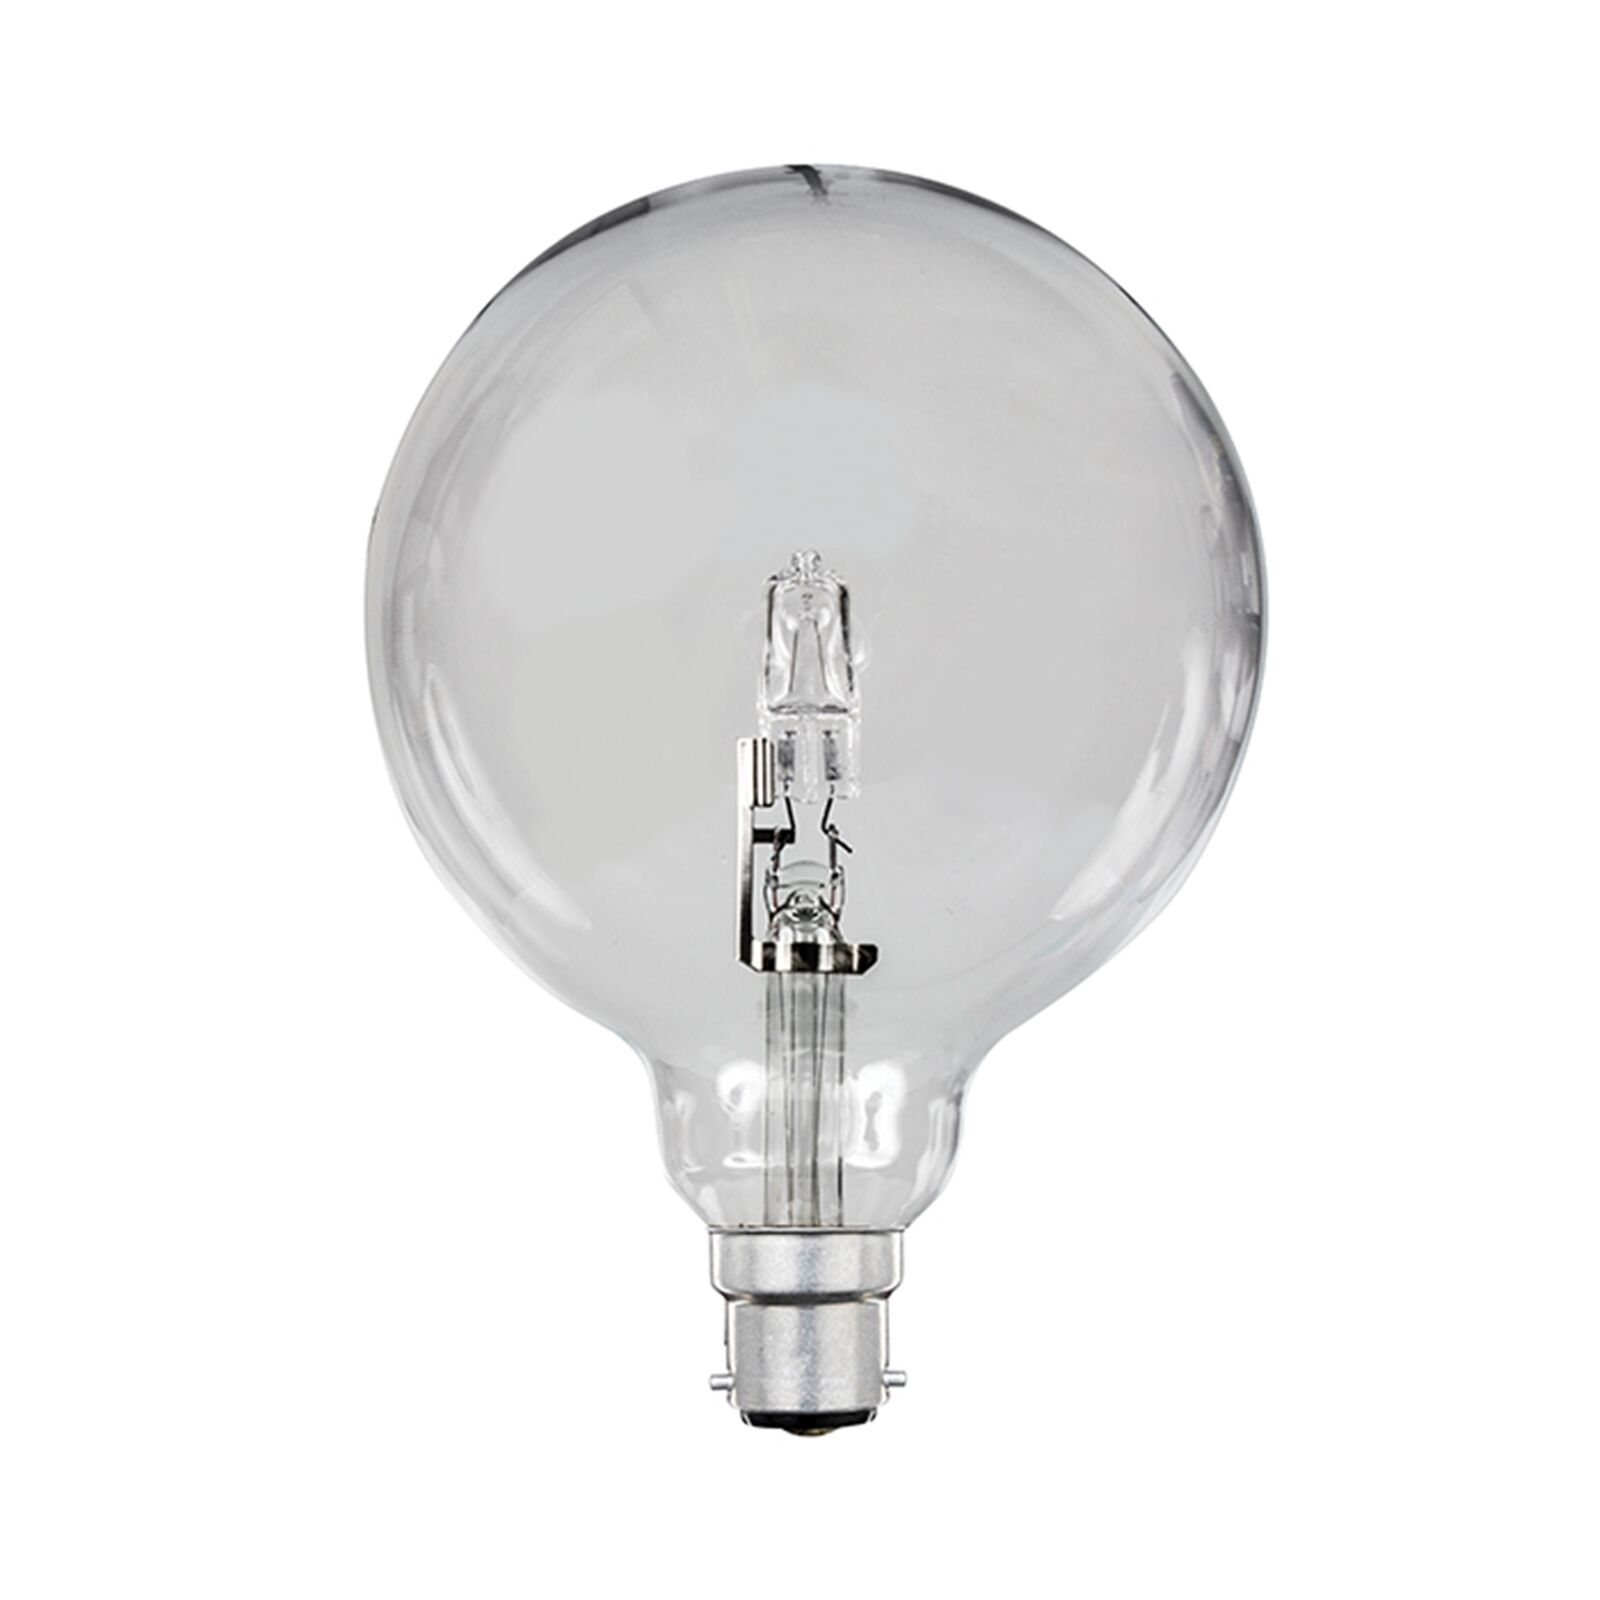 Brilliant G125 ECO HALOGEN GLOBE 42W Dimmable Dome Clear Bulb, BAYONET or SCREW